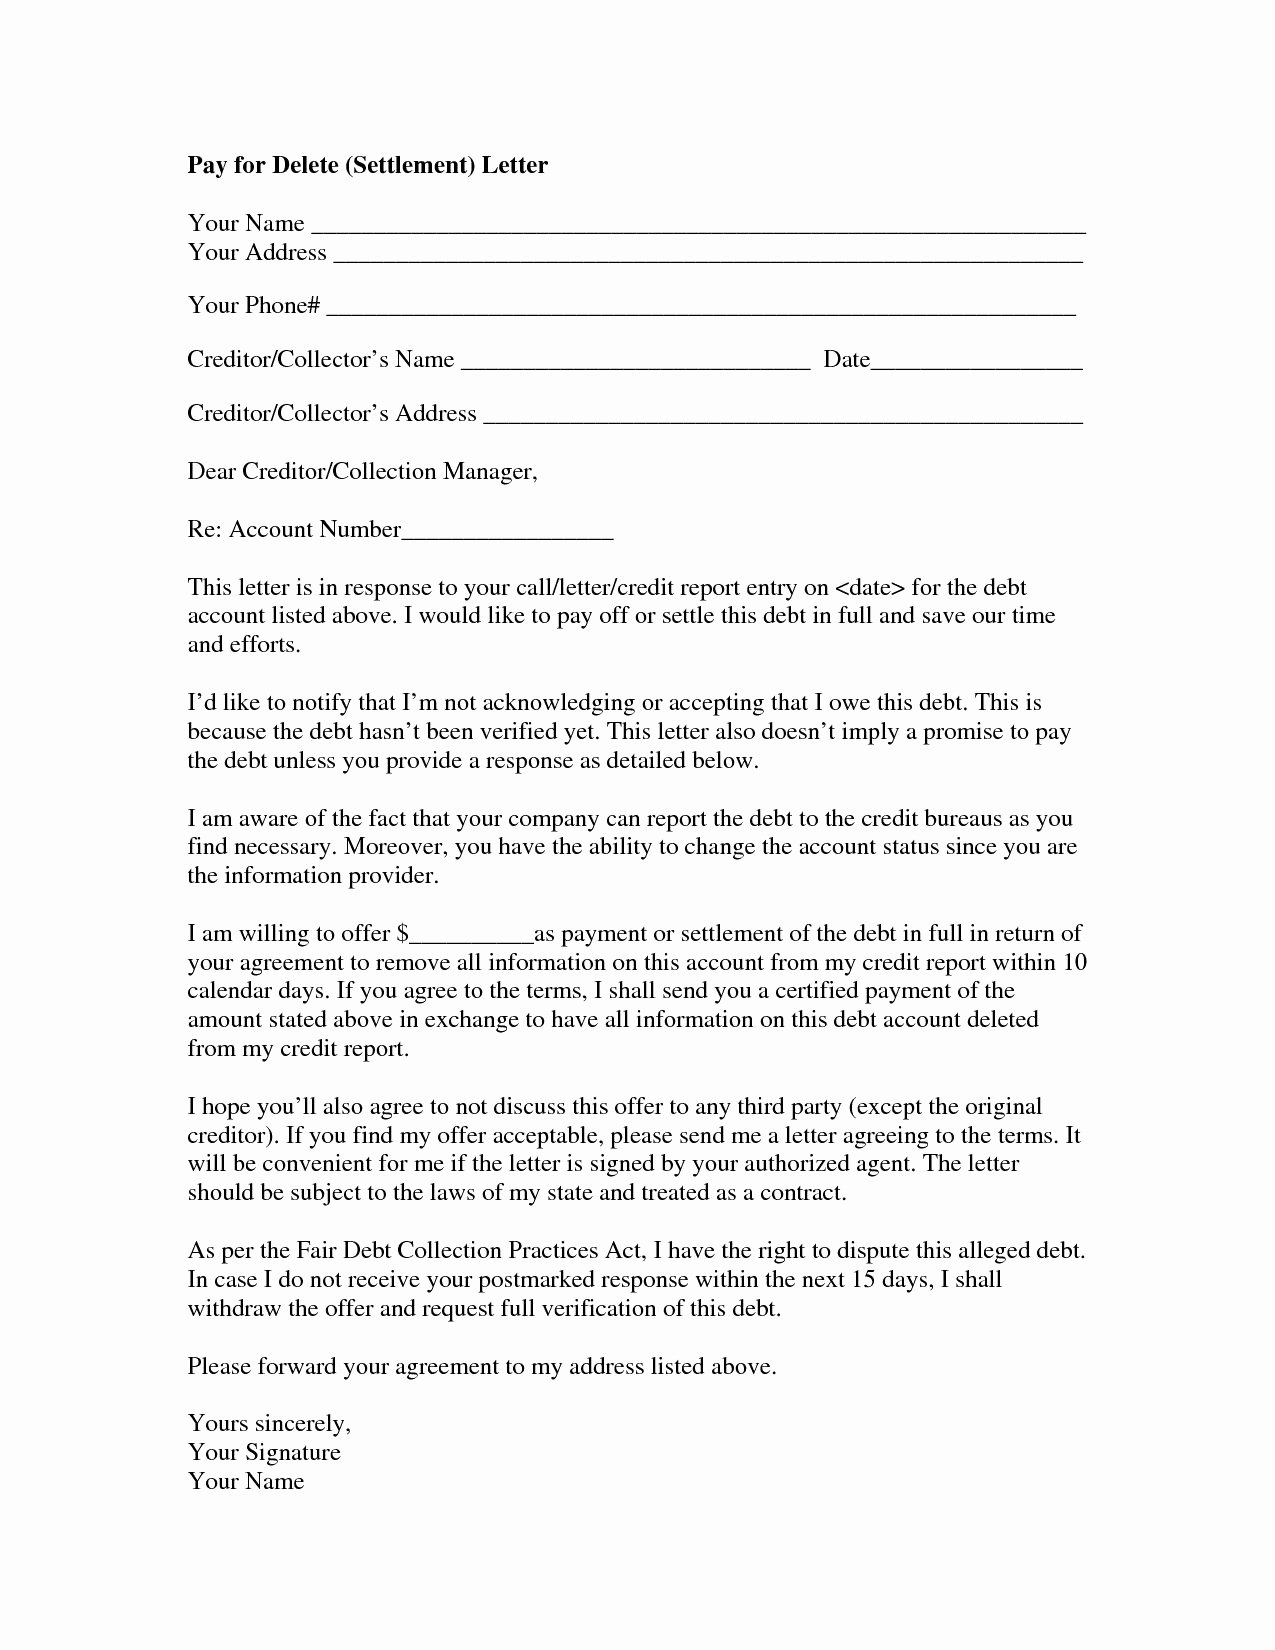 Legal Letter format Template Inspirational Legal Settlement Fer Letter Template Examples